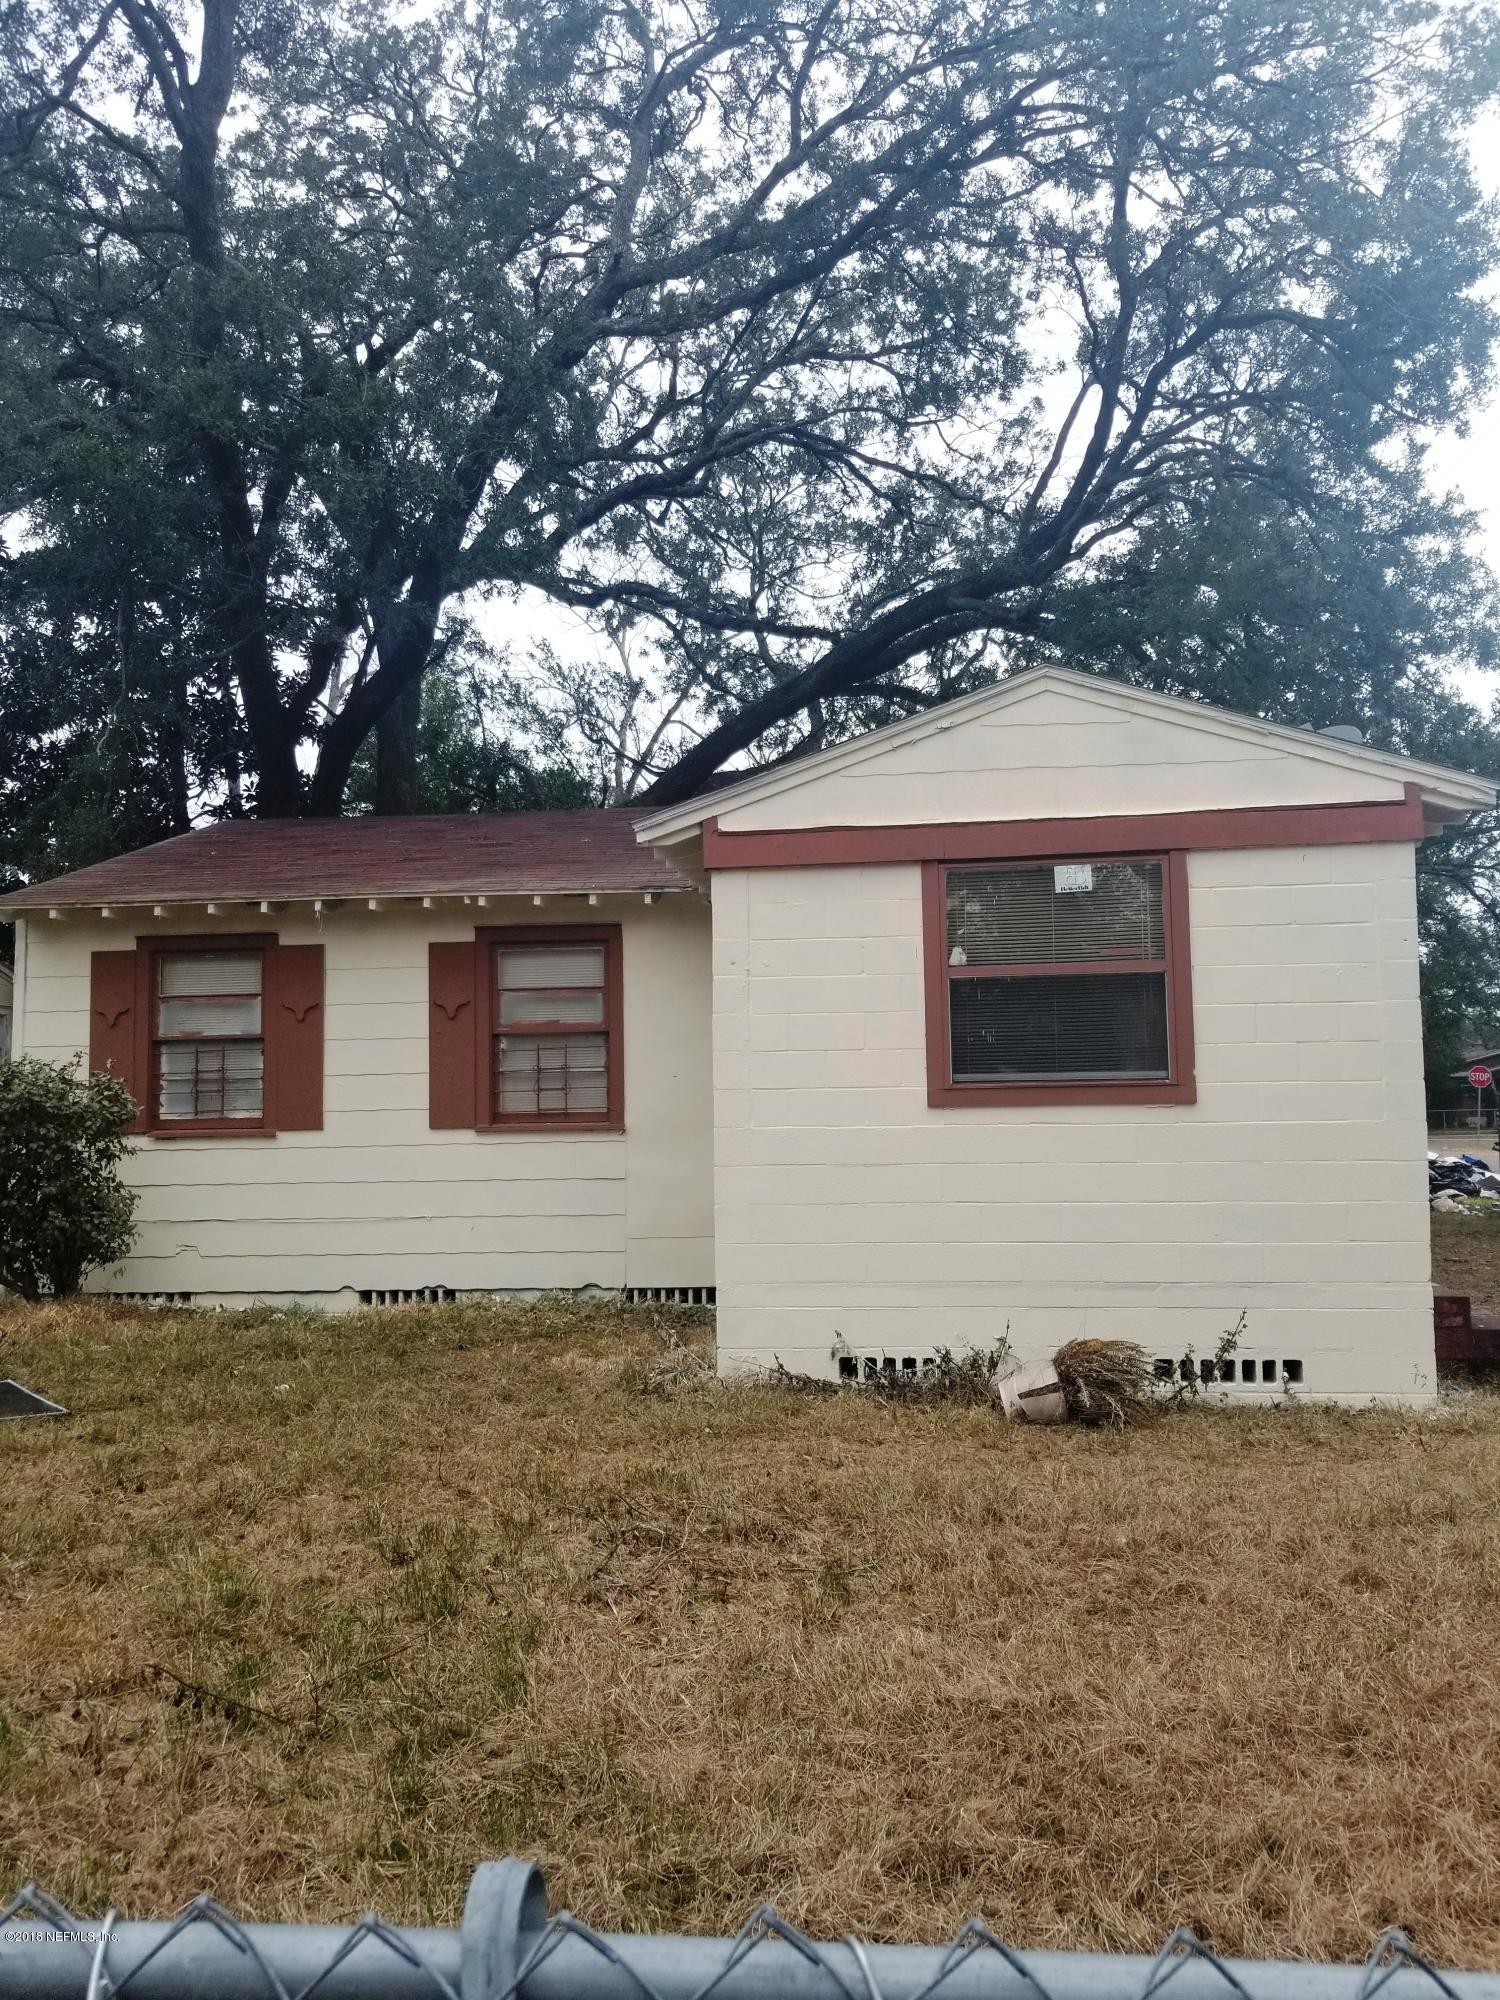 1611 34TH, JACKSONVILLE, FLORIDA 32209, 3 Bedrooms Bedrooms, ,1 BathroomBathrooms,Residential - single family,For sale,34TH,938895